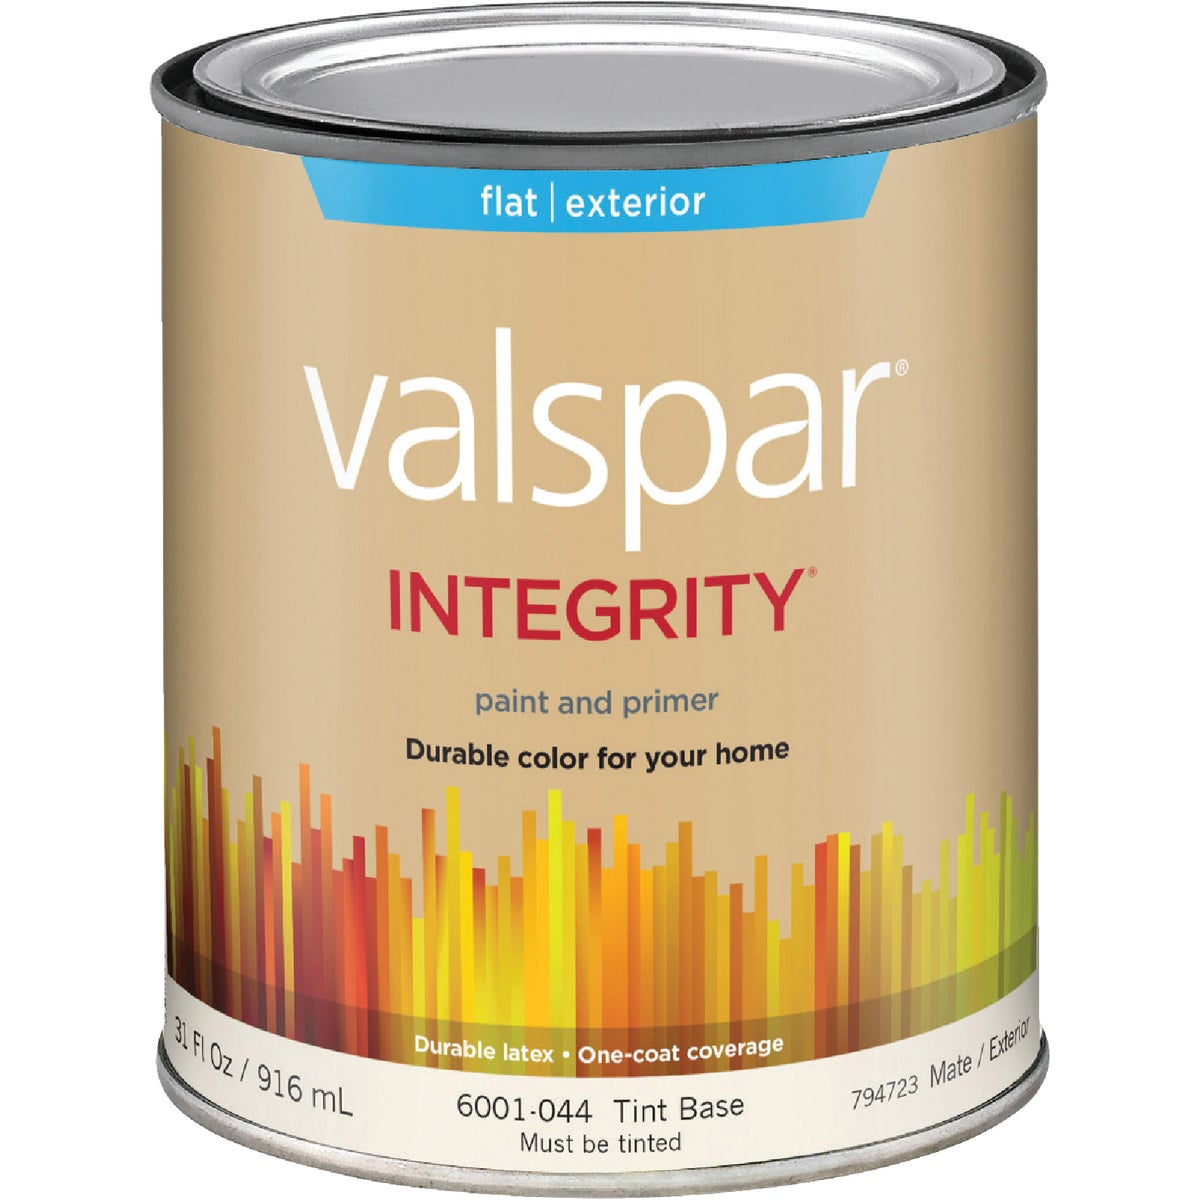 EXT FLAT TINT BS PAINT - 004.6001044.005 by Valspar Corp